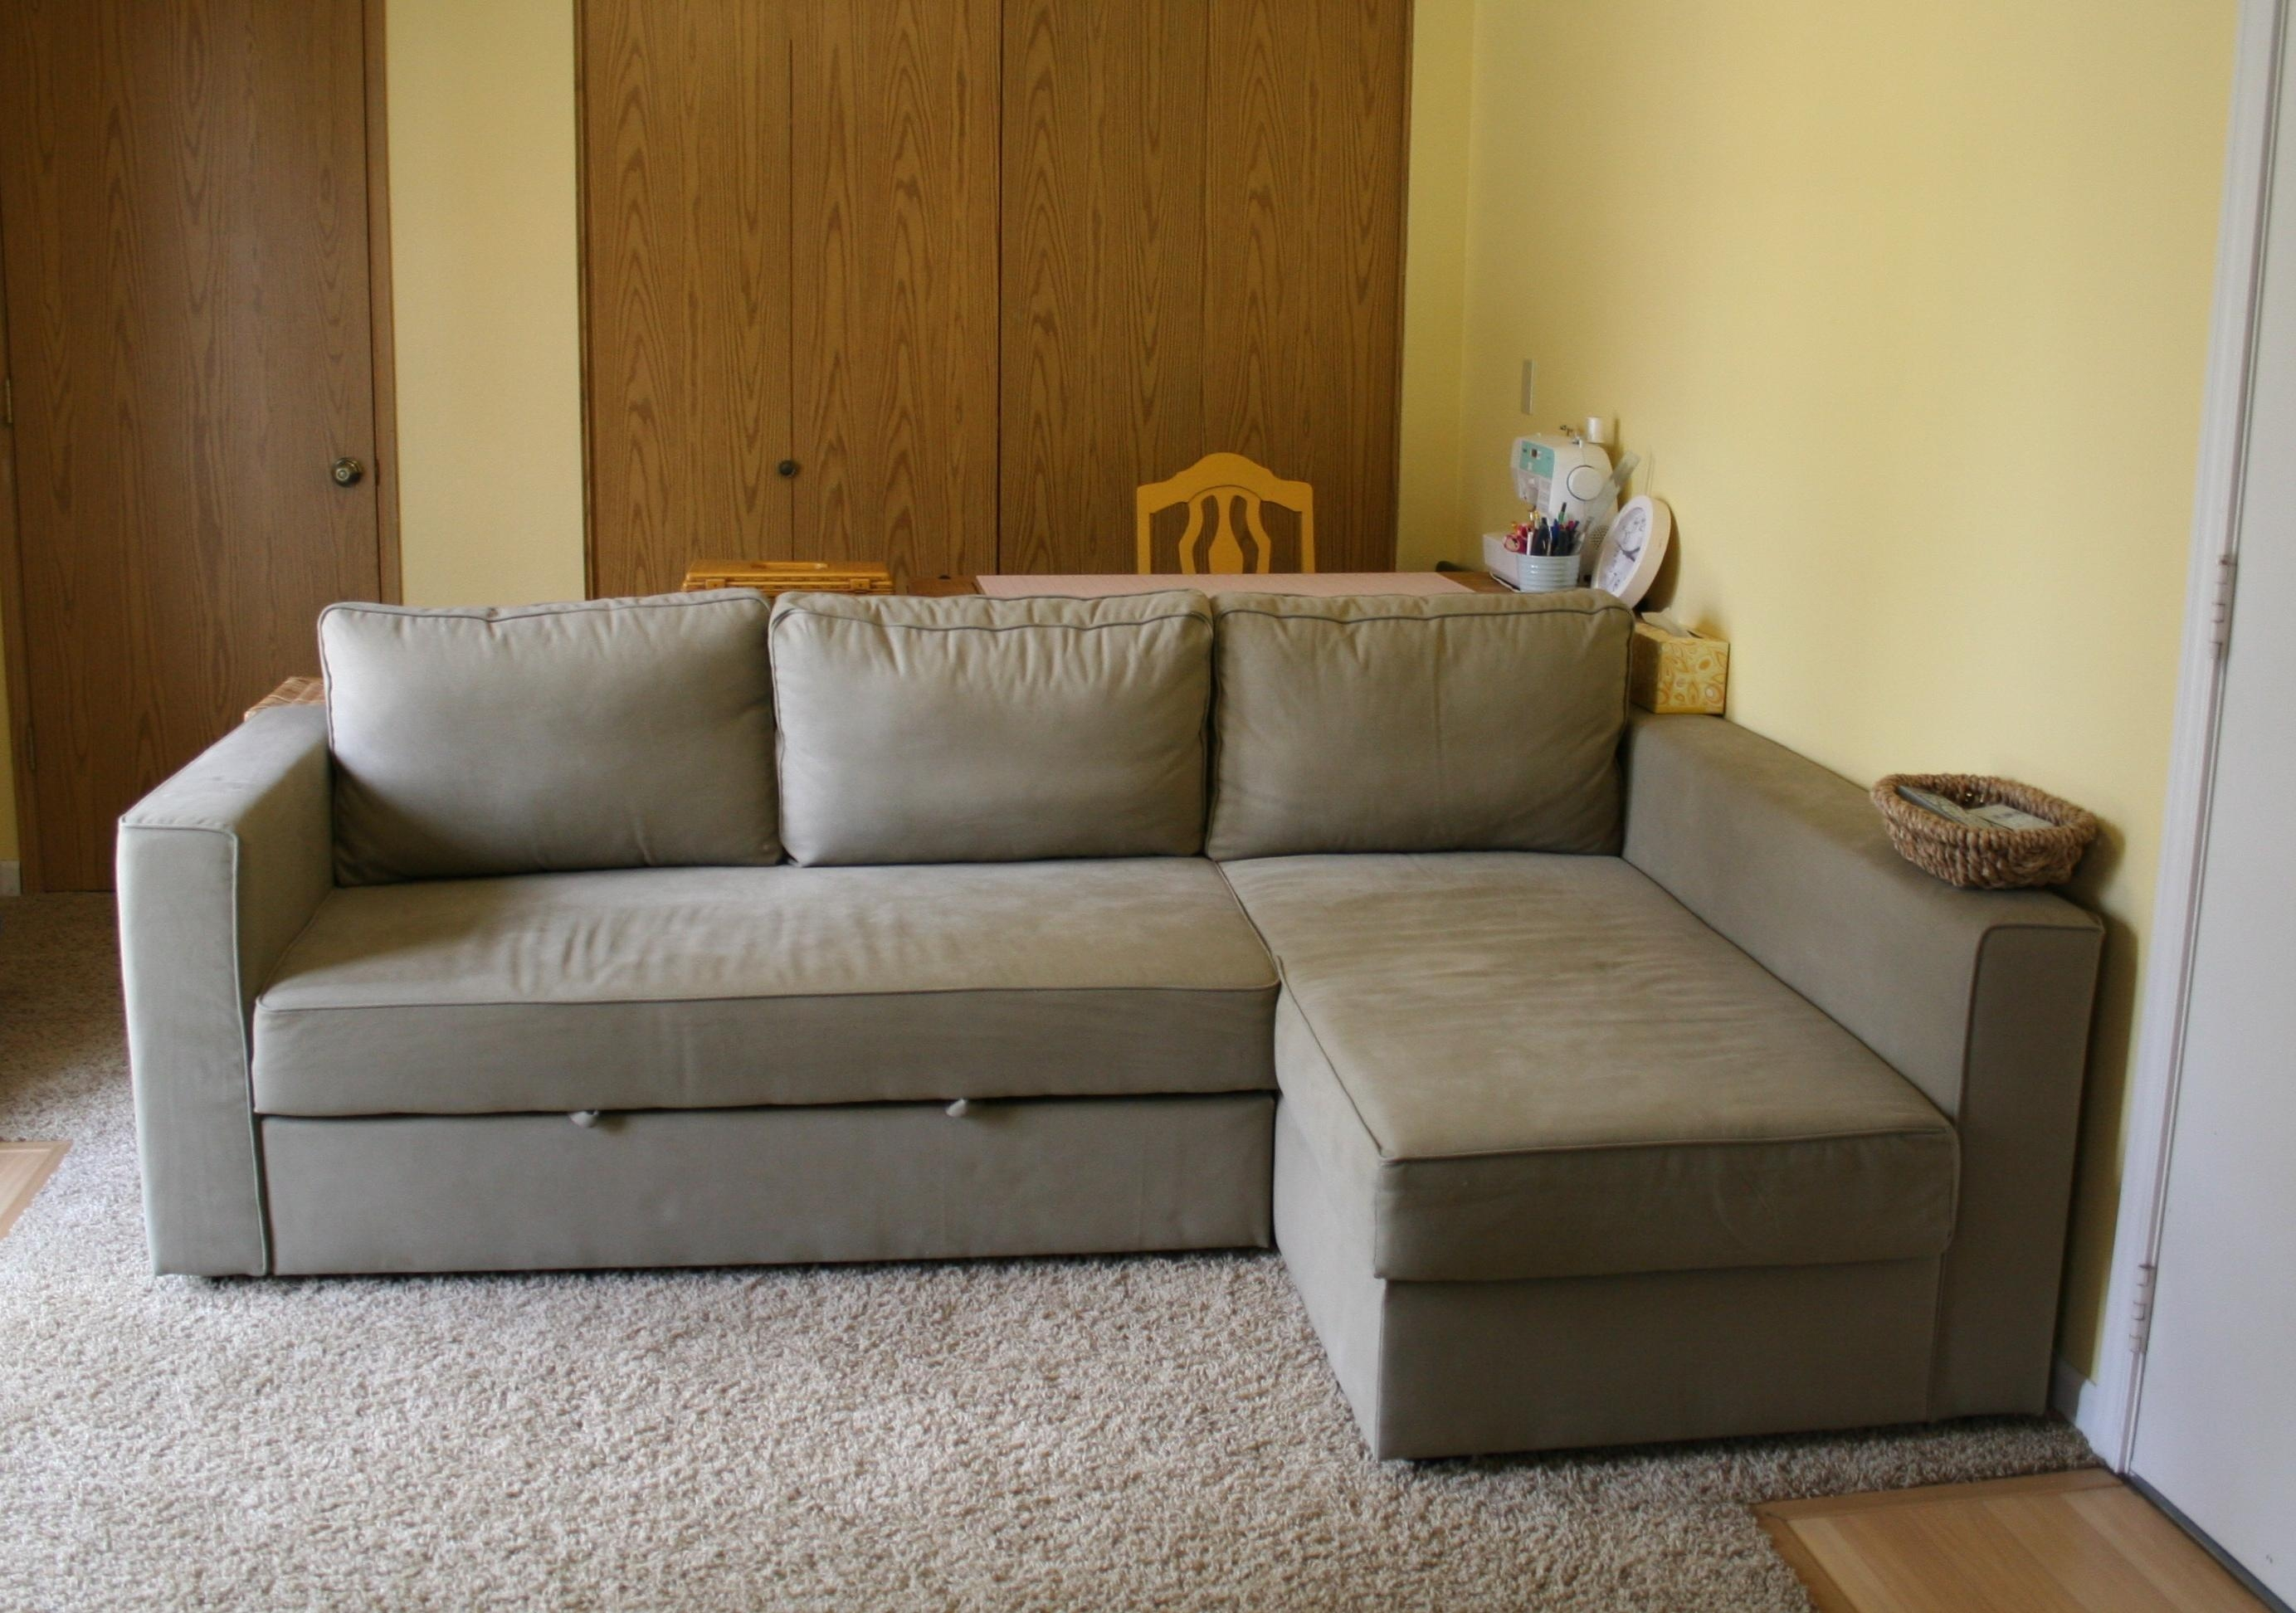 Furniture: Ikea Sofa Bed | Ikea Sofa Beds | Corner Sofa Bed Ikea In Cheap Corner Sofa Beds (Image 10 of 20)